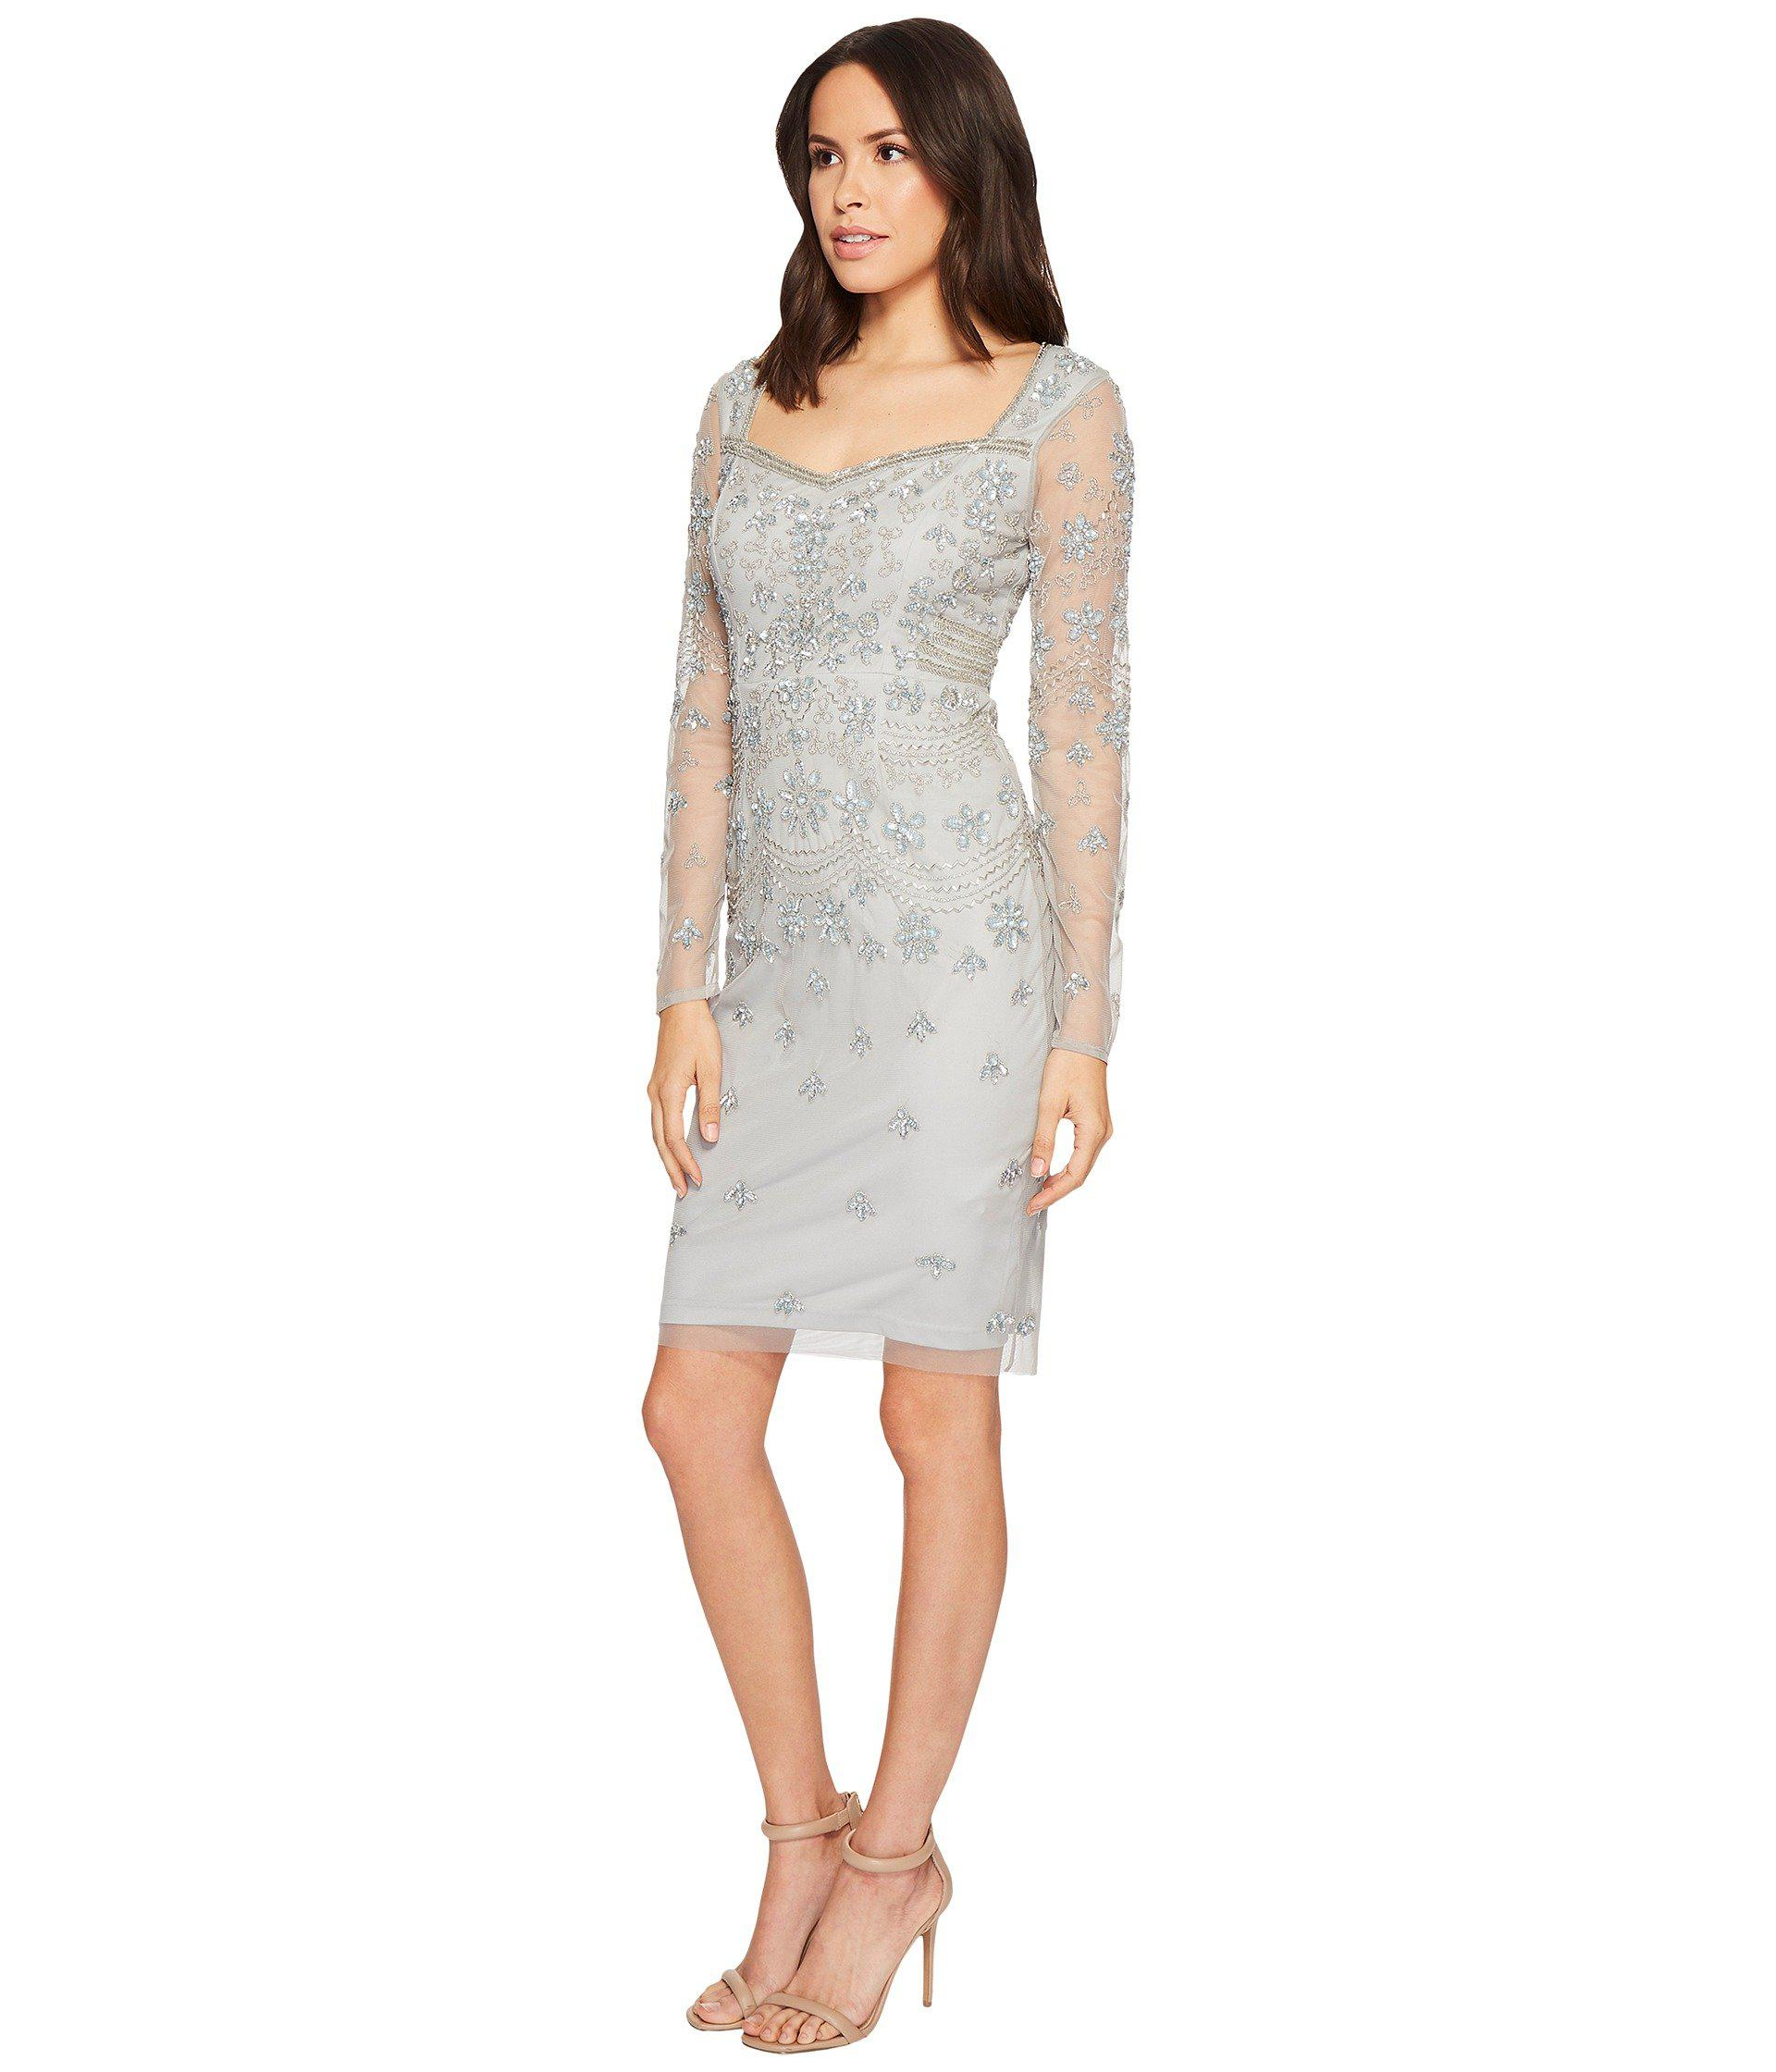 238a3c5ad98 Lyst - Adrianna Papell Short Beaded Long Sleeve Dress With Sweetheart  Neckline - Save 45%